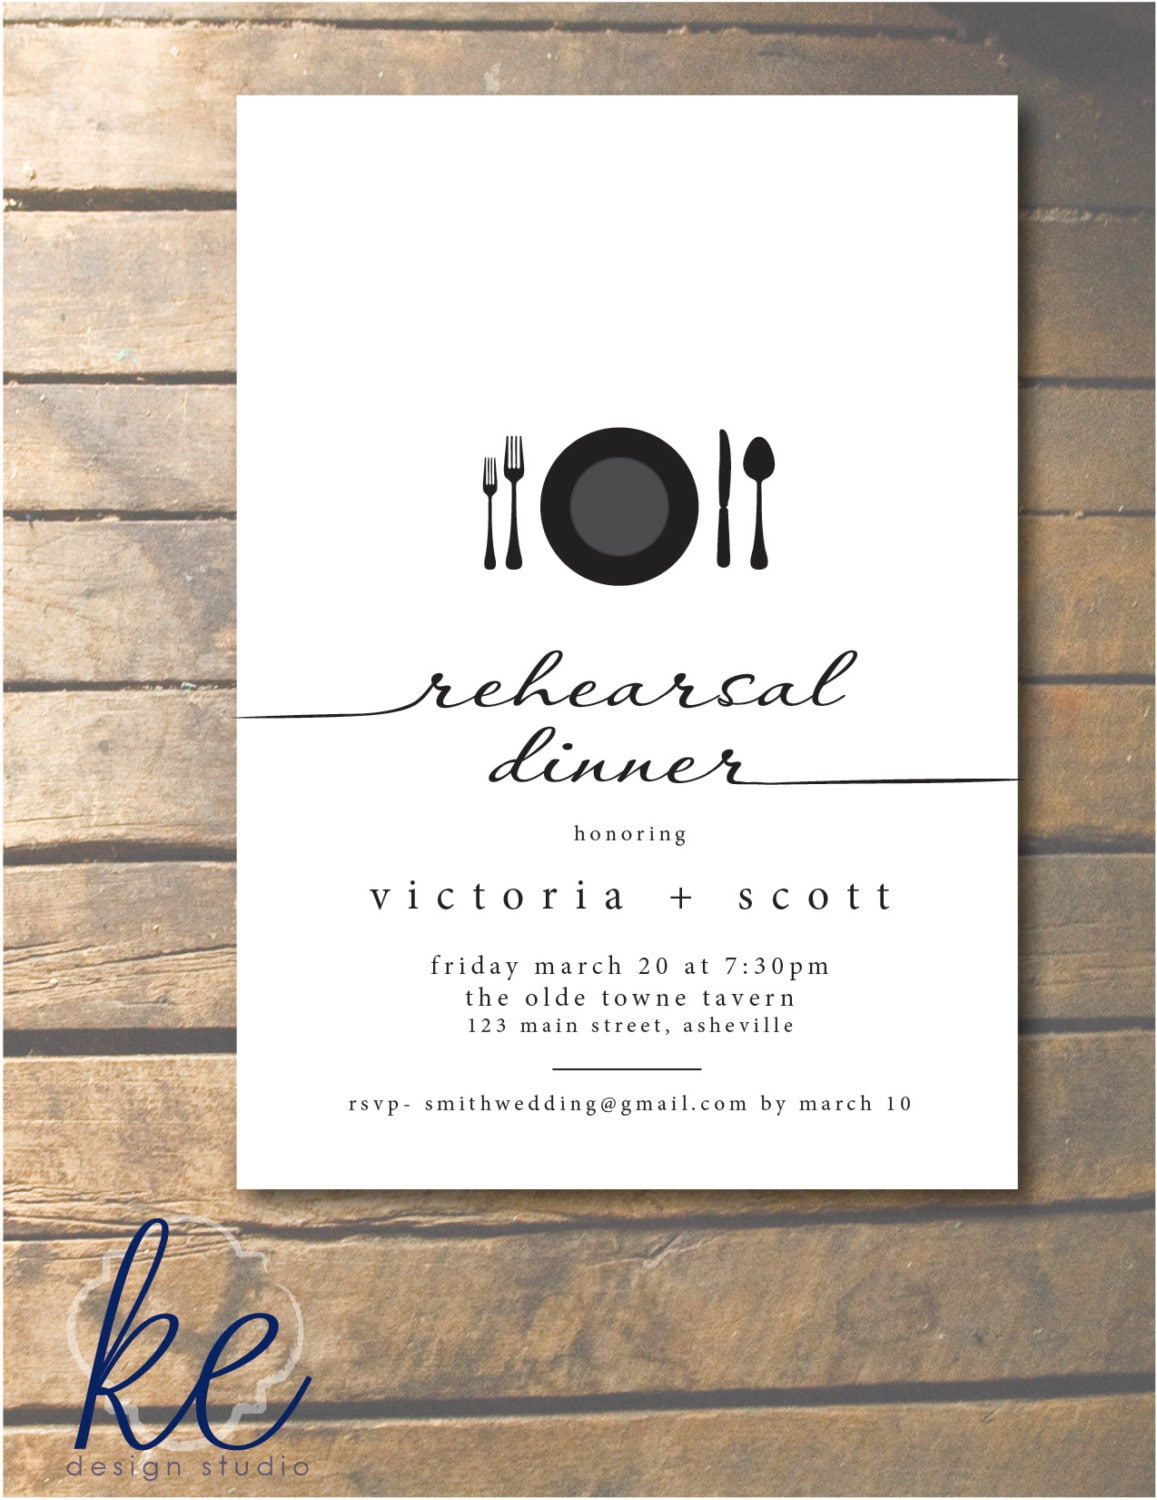 script rehearsal dinner invitation with place by